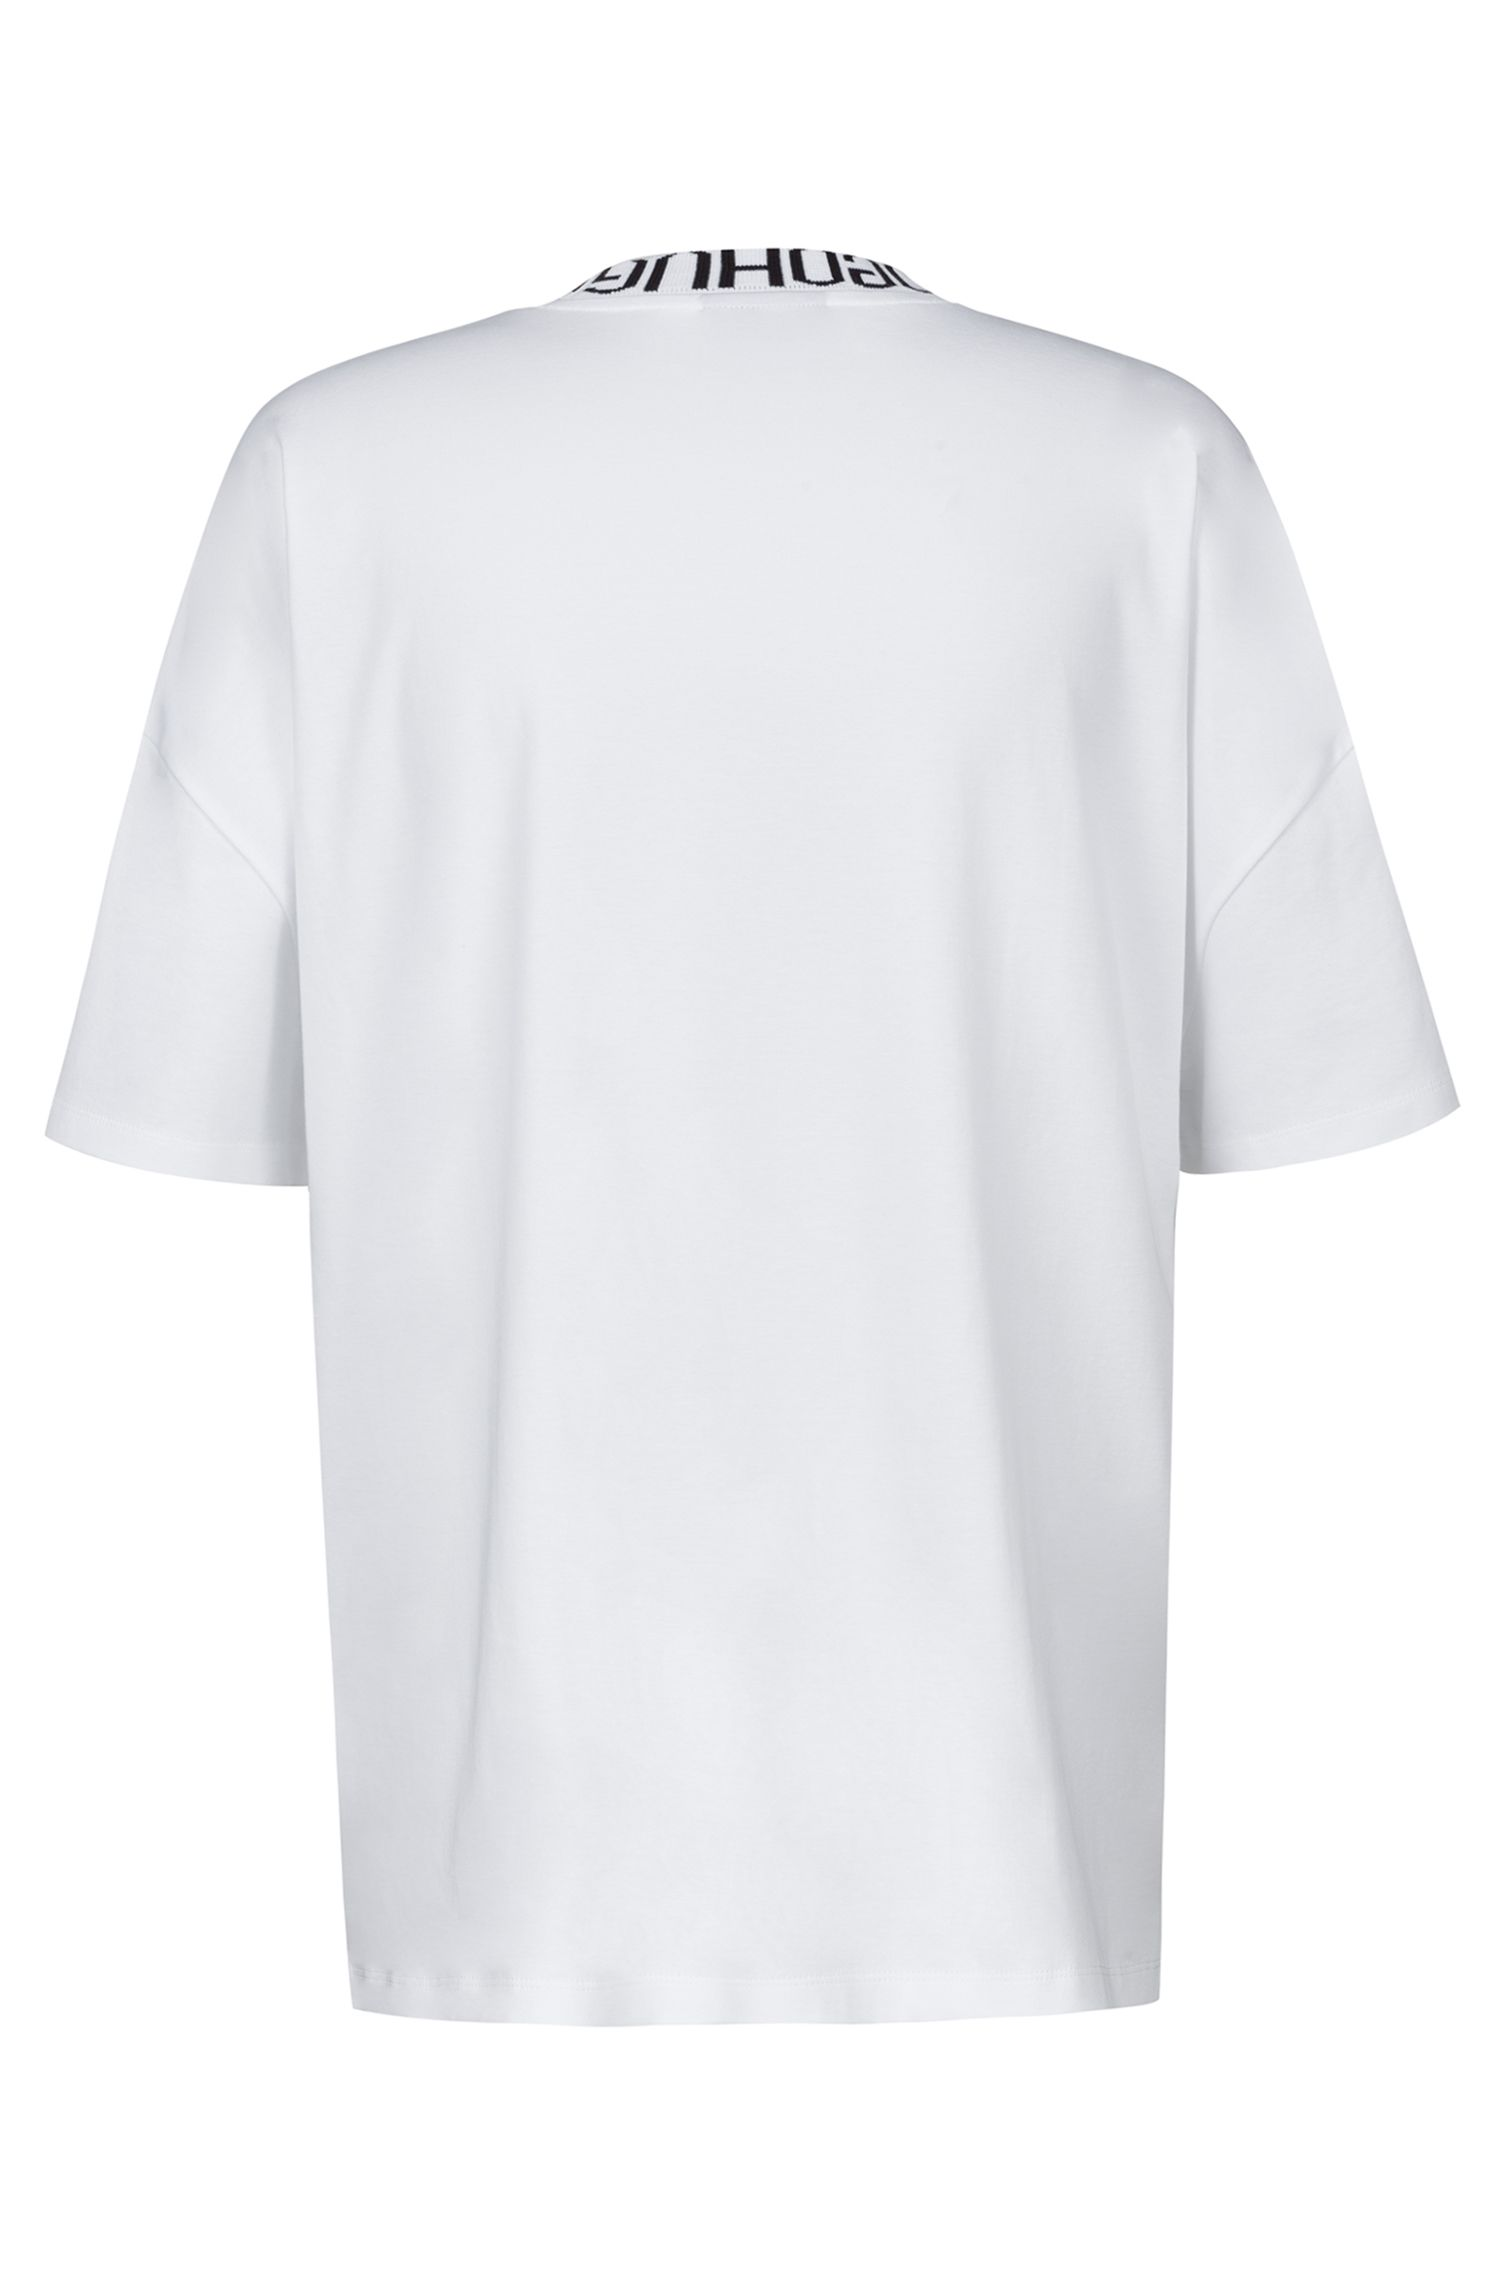 Oversized-fit T-shirt with reverse-logo neckline, White